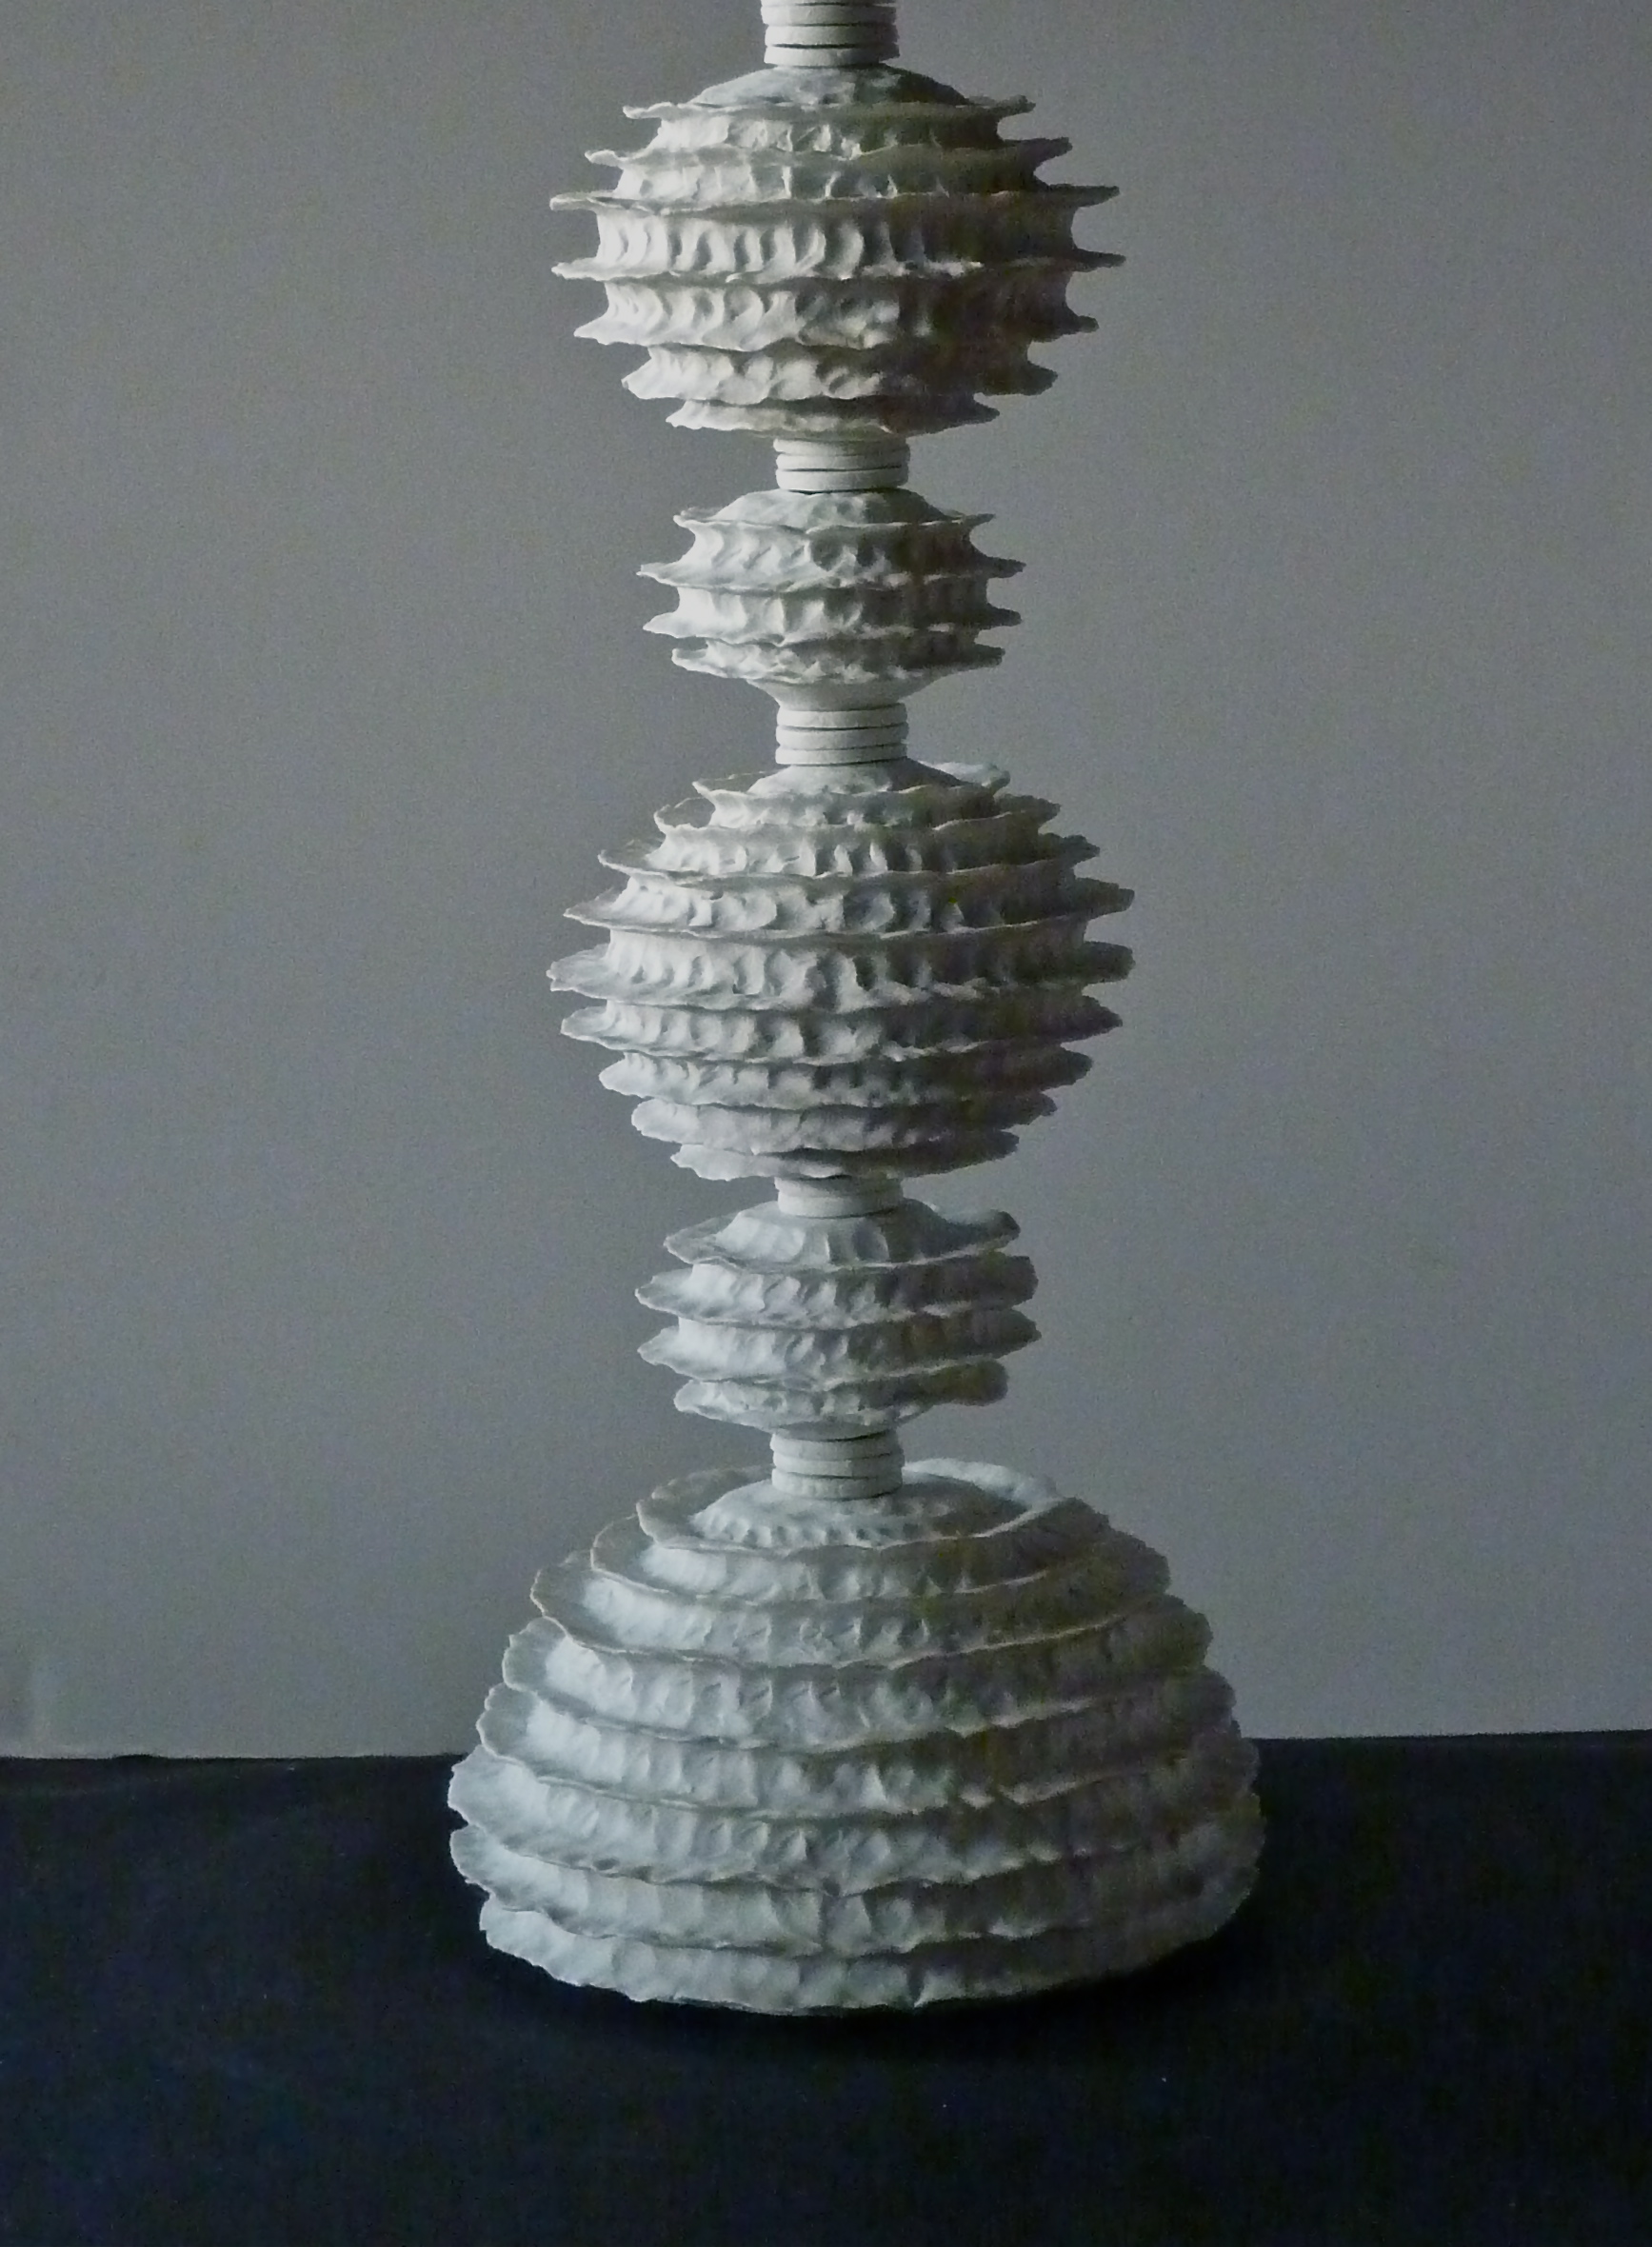 Raw Porcelain lamp, v.1